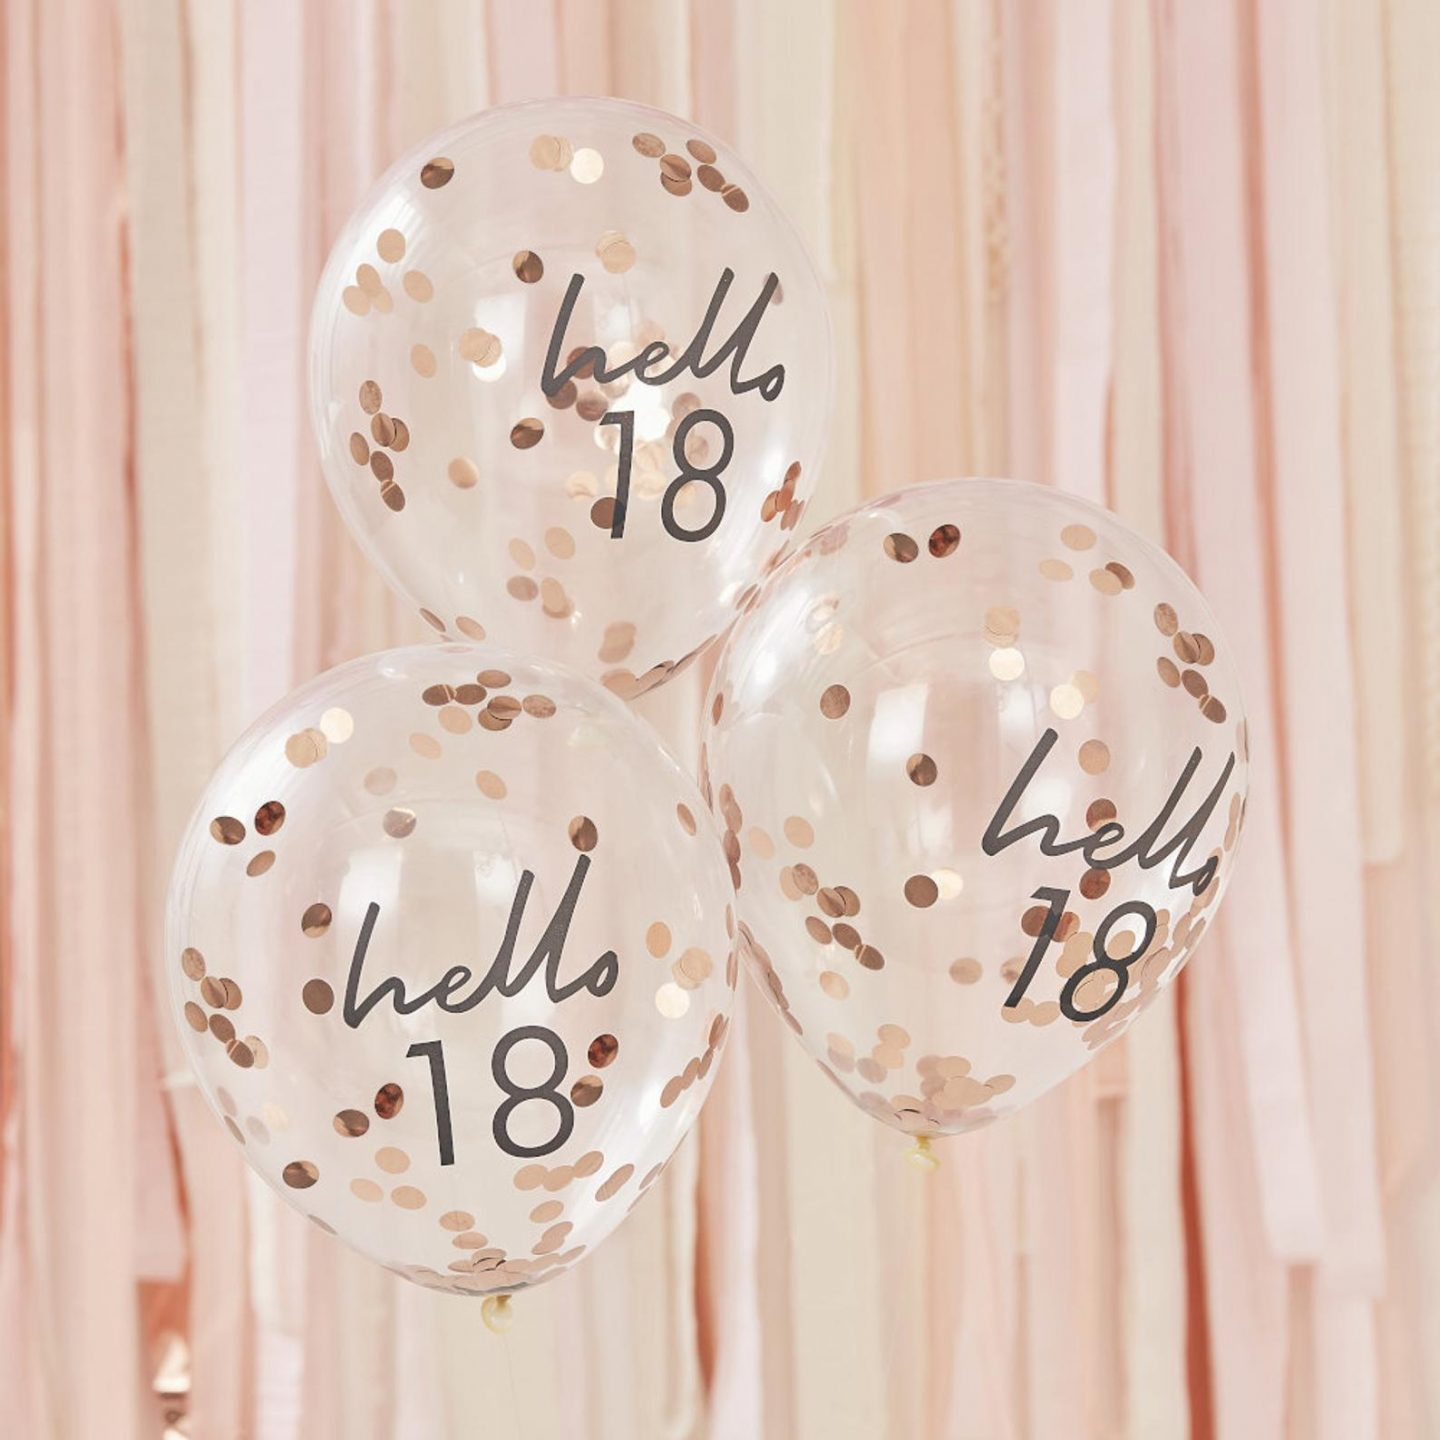 Sweet and cheap birthday balloons with confetti